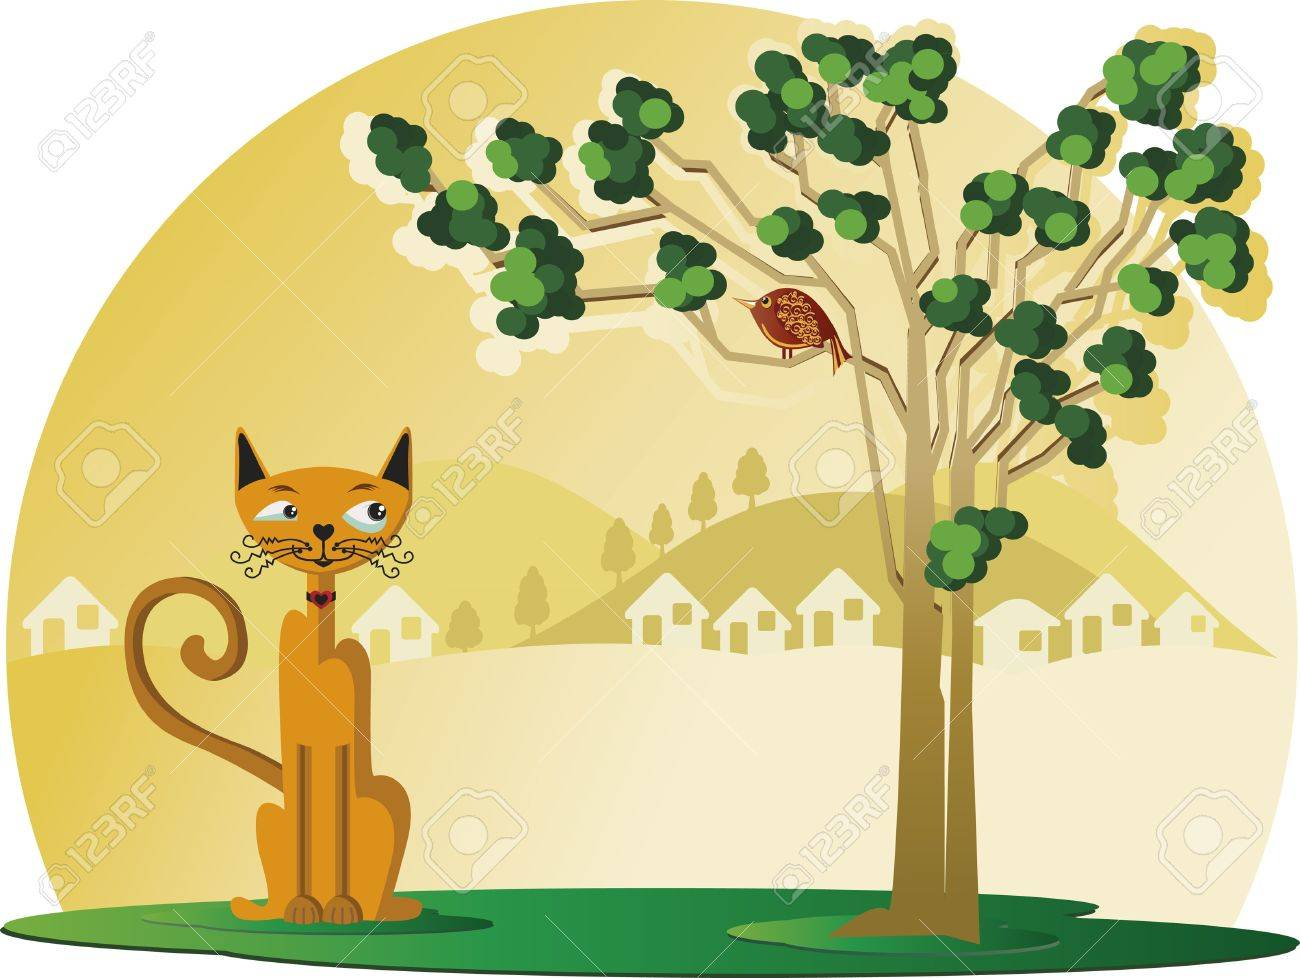 Kitten under a tree and looking at a bird. It's a sunny day.There is a   small city in the background. Stock Vector - 9780443